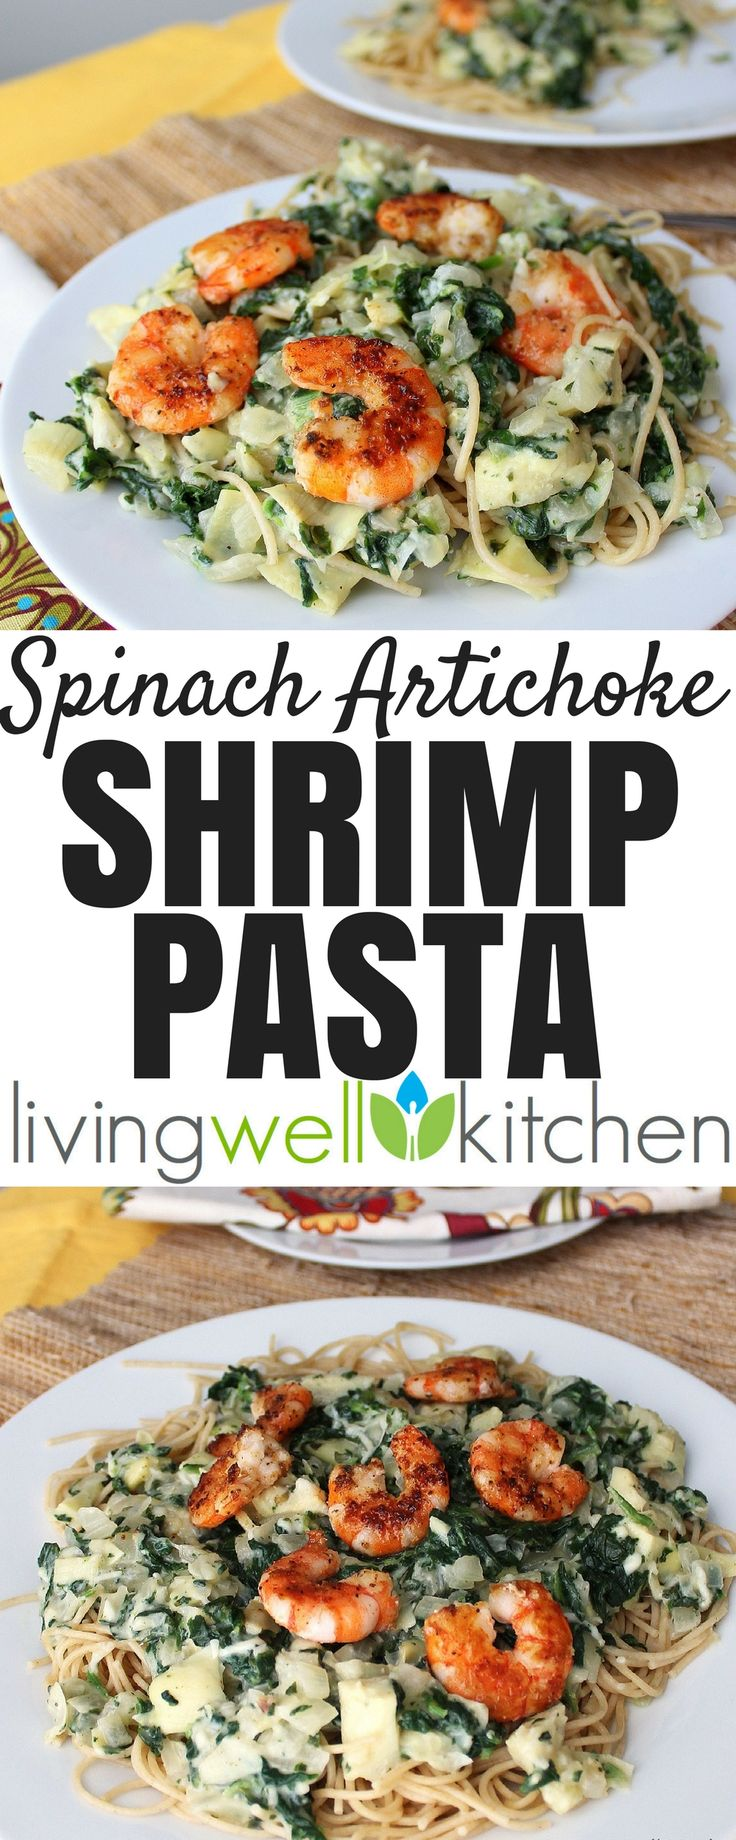 Spinach Artichoke Shrimp Pasta from Living Well Kitchen is a pasta dish covered in a rich and creamy spinach artichoke sauce, topped with shrimp that's deliciously satisfying. This recipe can easily be made gluten free. #shrimp #spinach #pasta #seafood